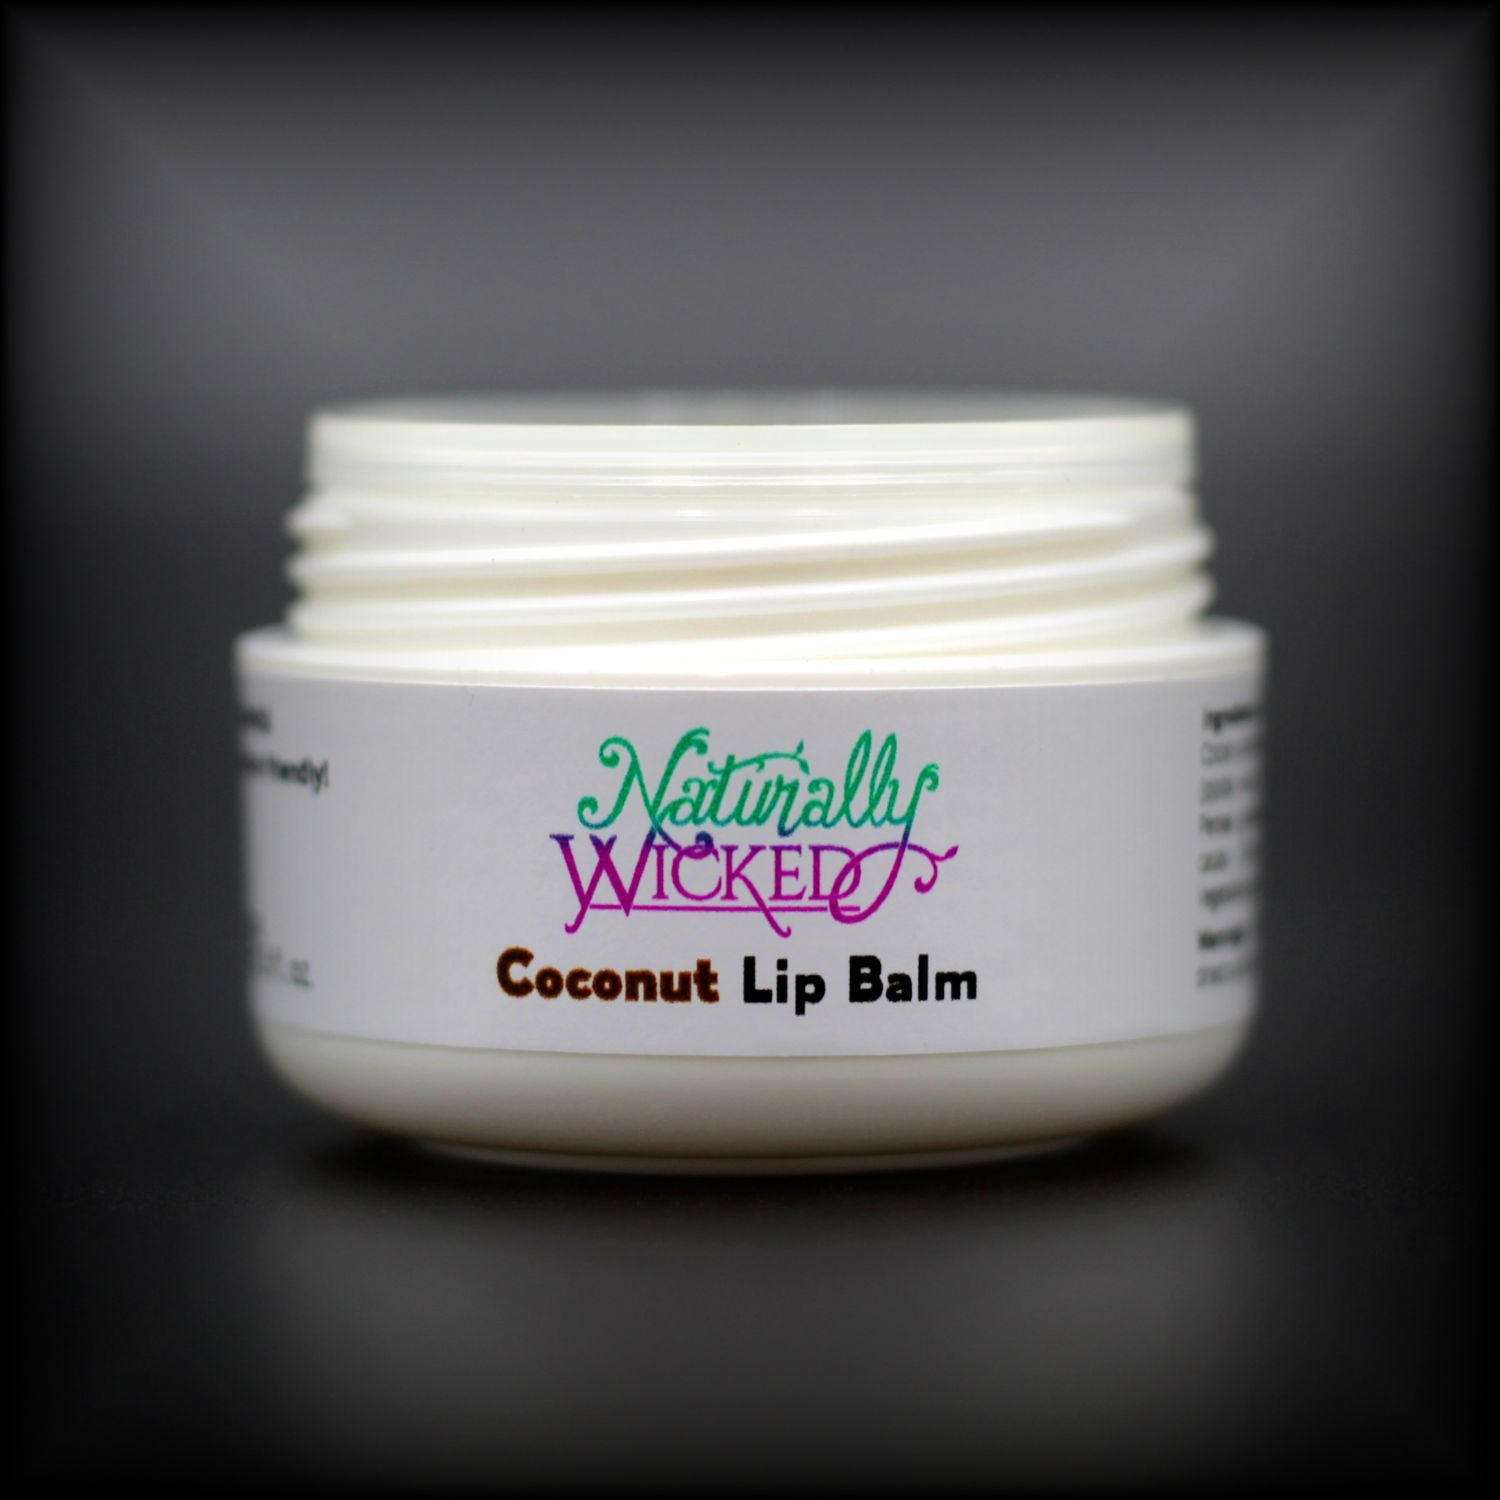 Naturally Wicked Coconut Lip Balm Container Without Lid, Exposing Screwed Lid Connection & Seal